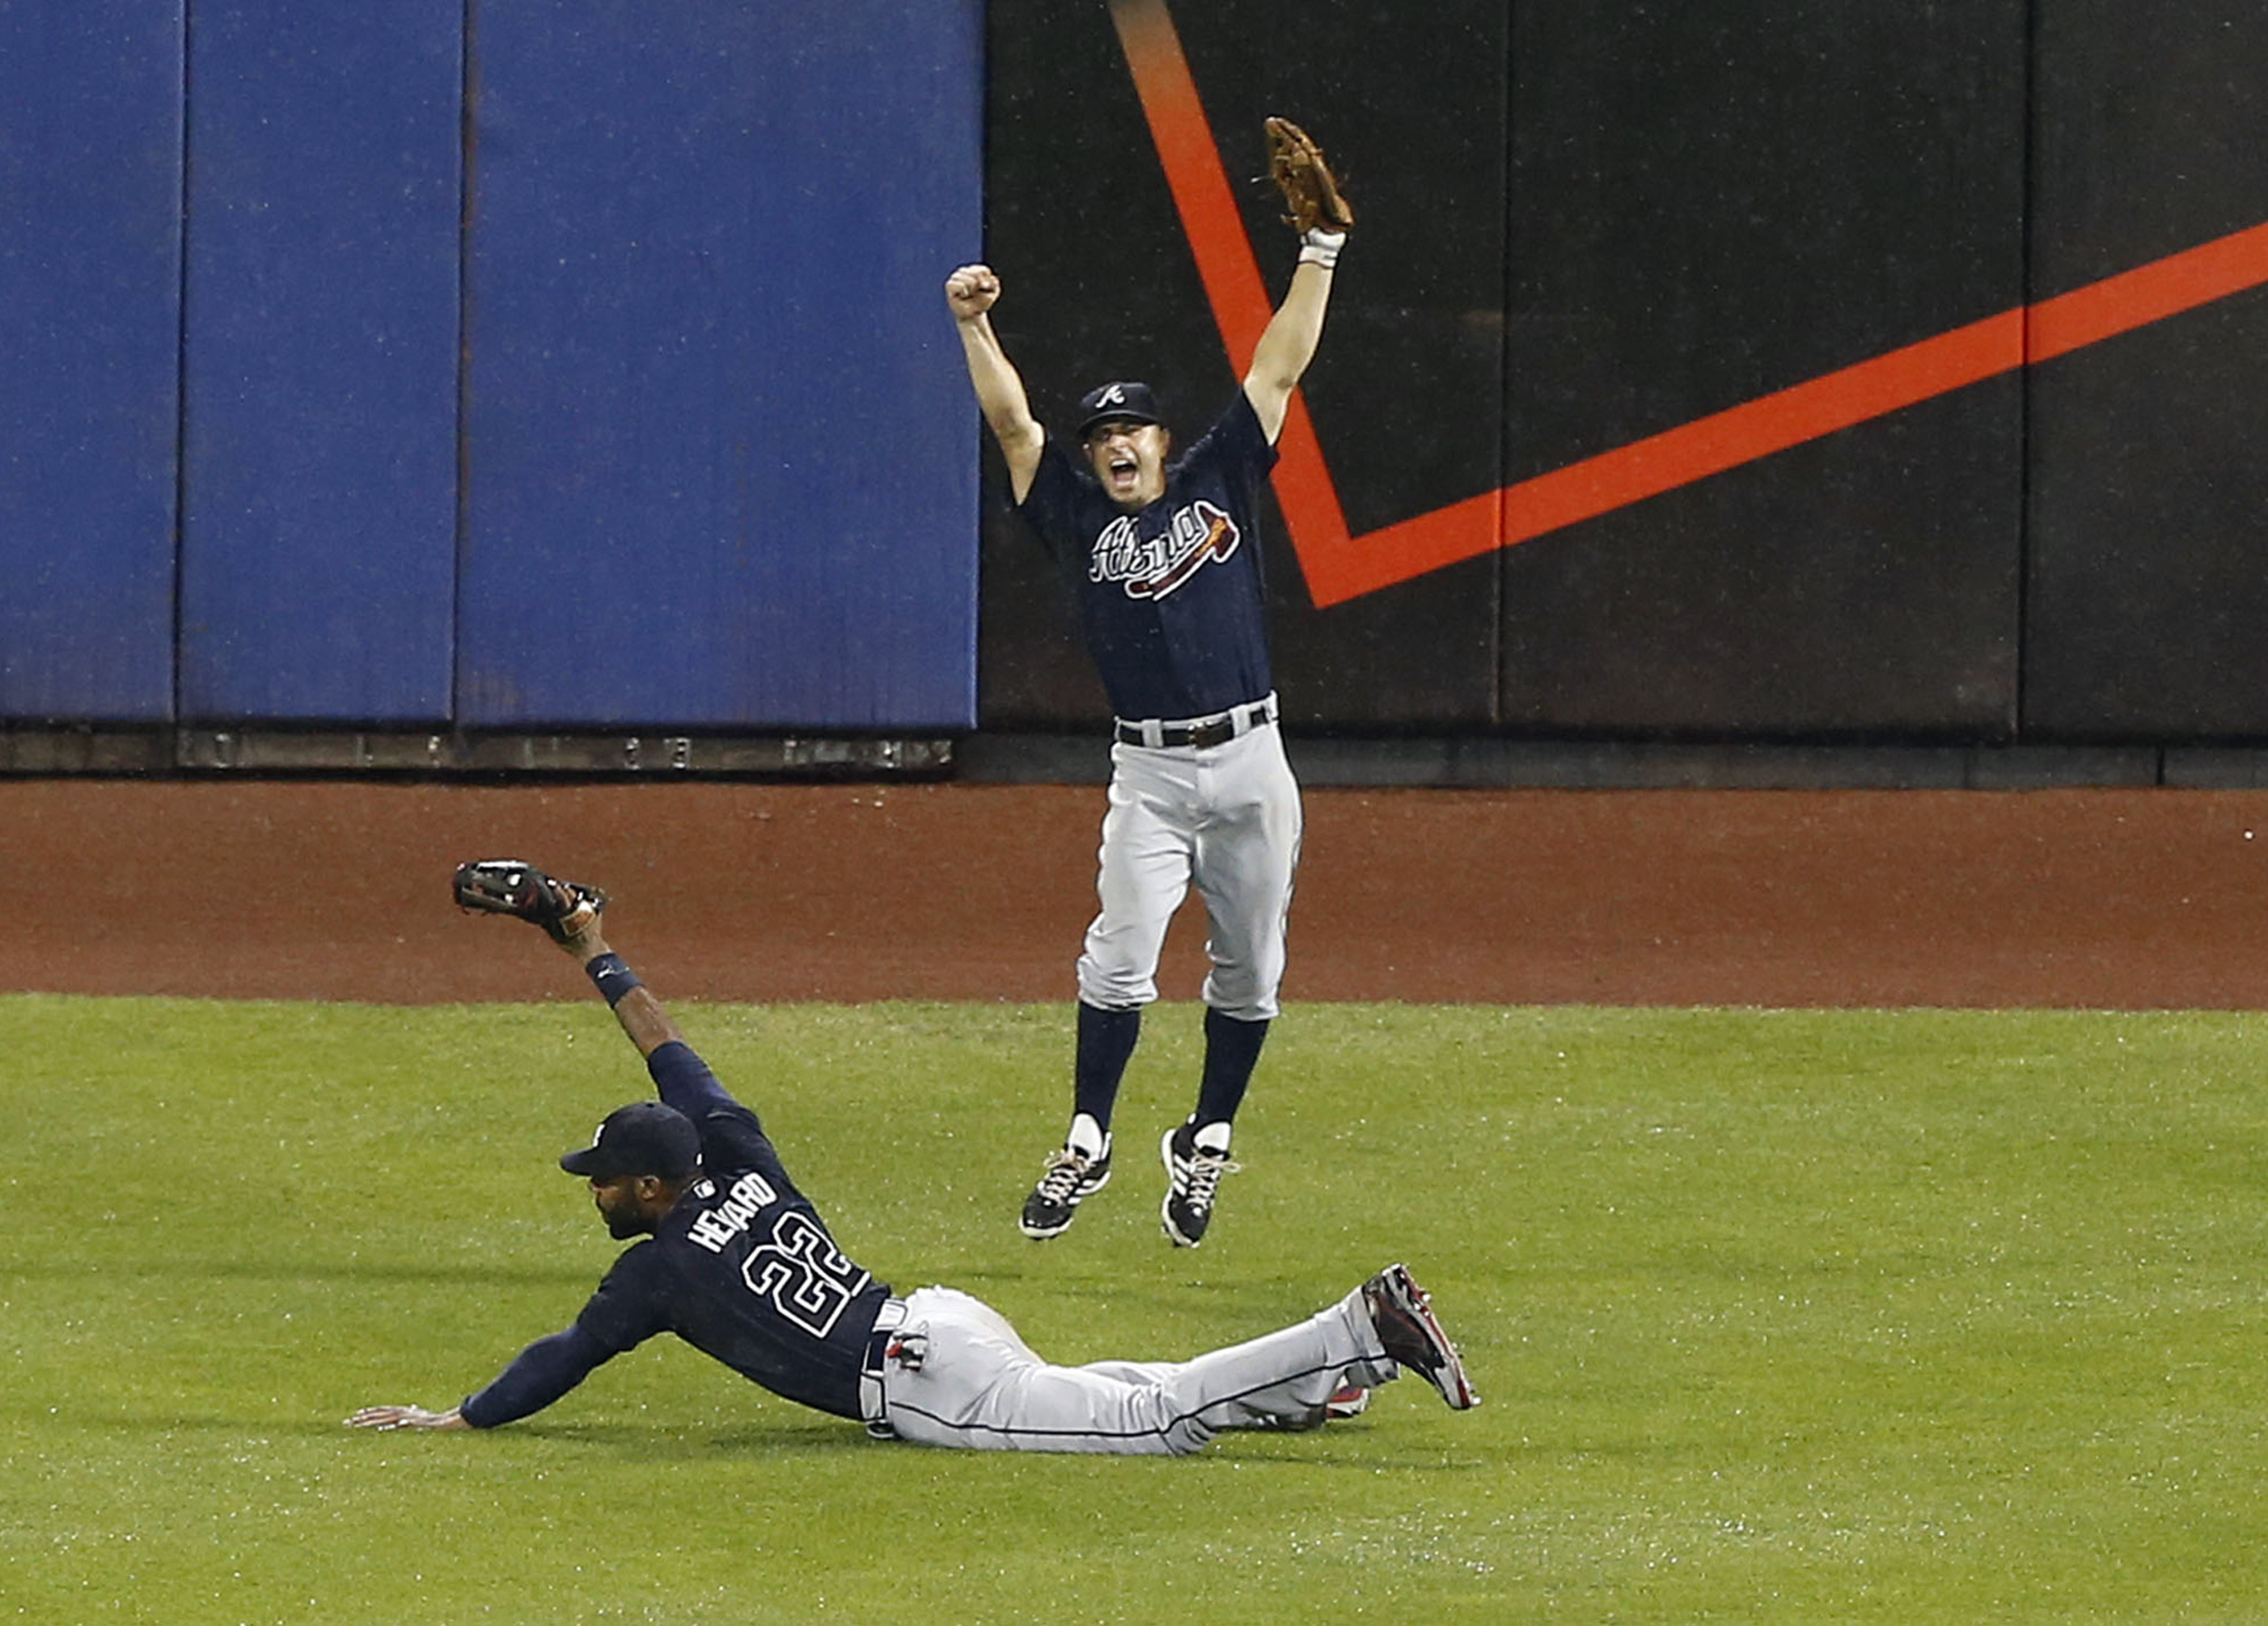 Jason Heyward's game-ending catch vs. the Mets was used to demonstrate MLBAM's new tracking technology.